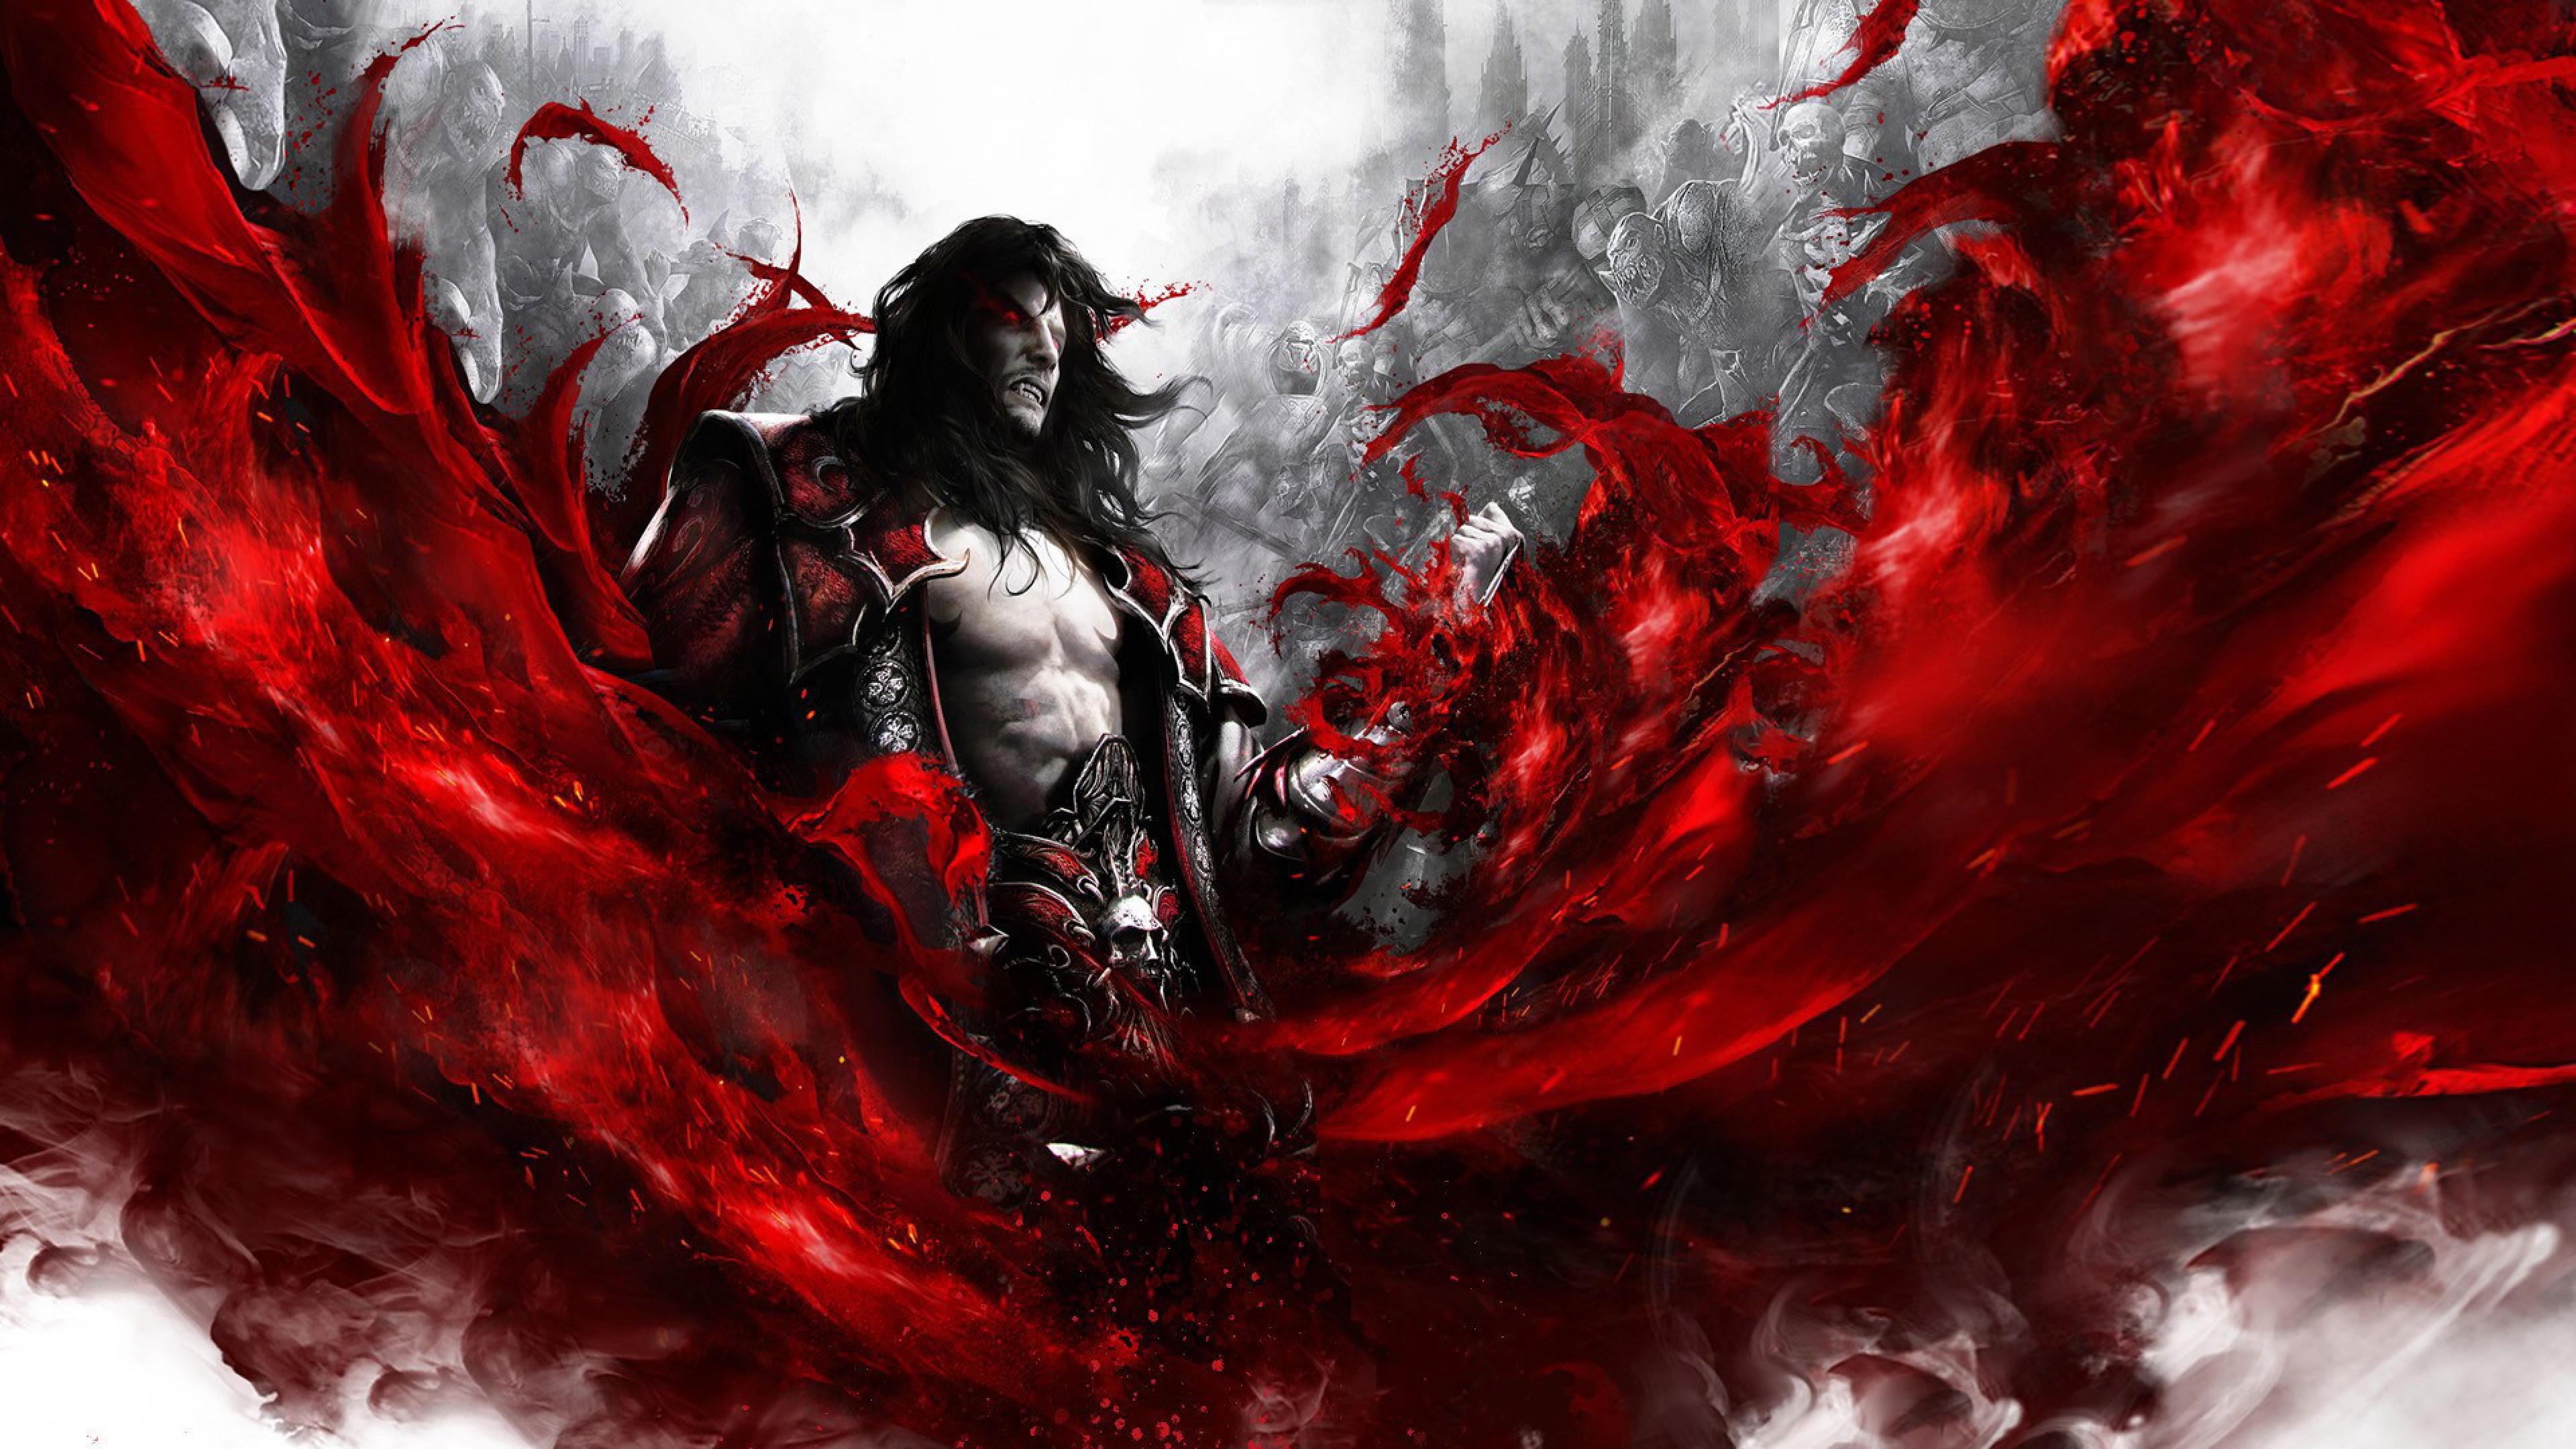 Busty Anime Girl Wallpaper Castlevania Lords Of Shadow 2 Ps4wallpapers Com